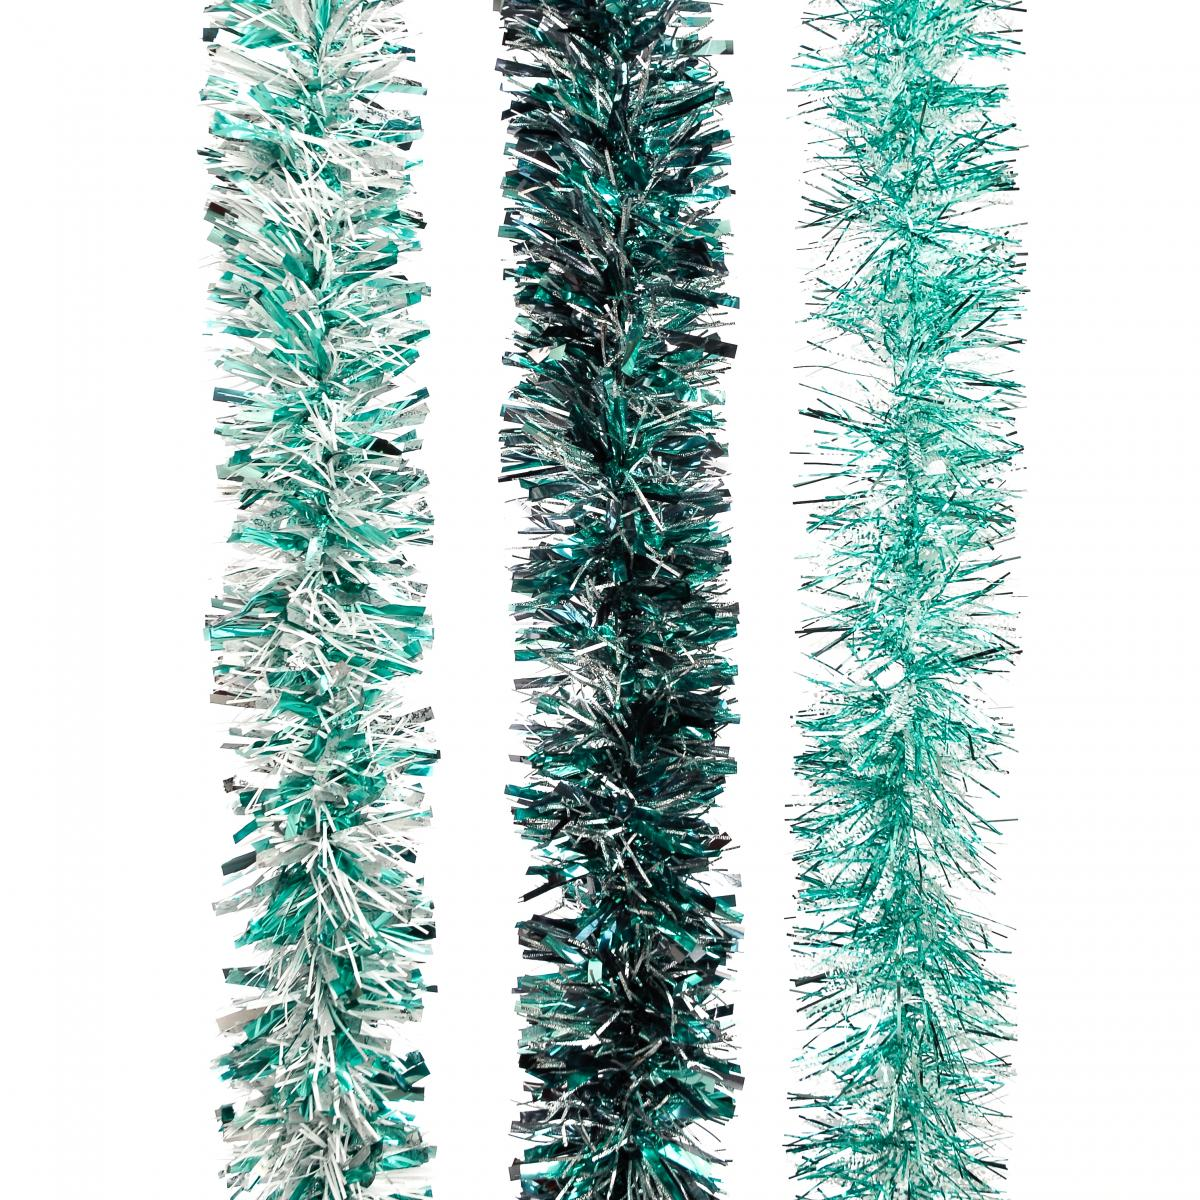 200cm x 10cm Assorted Teal Tinsel – Now Only £2.50